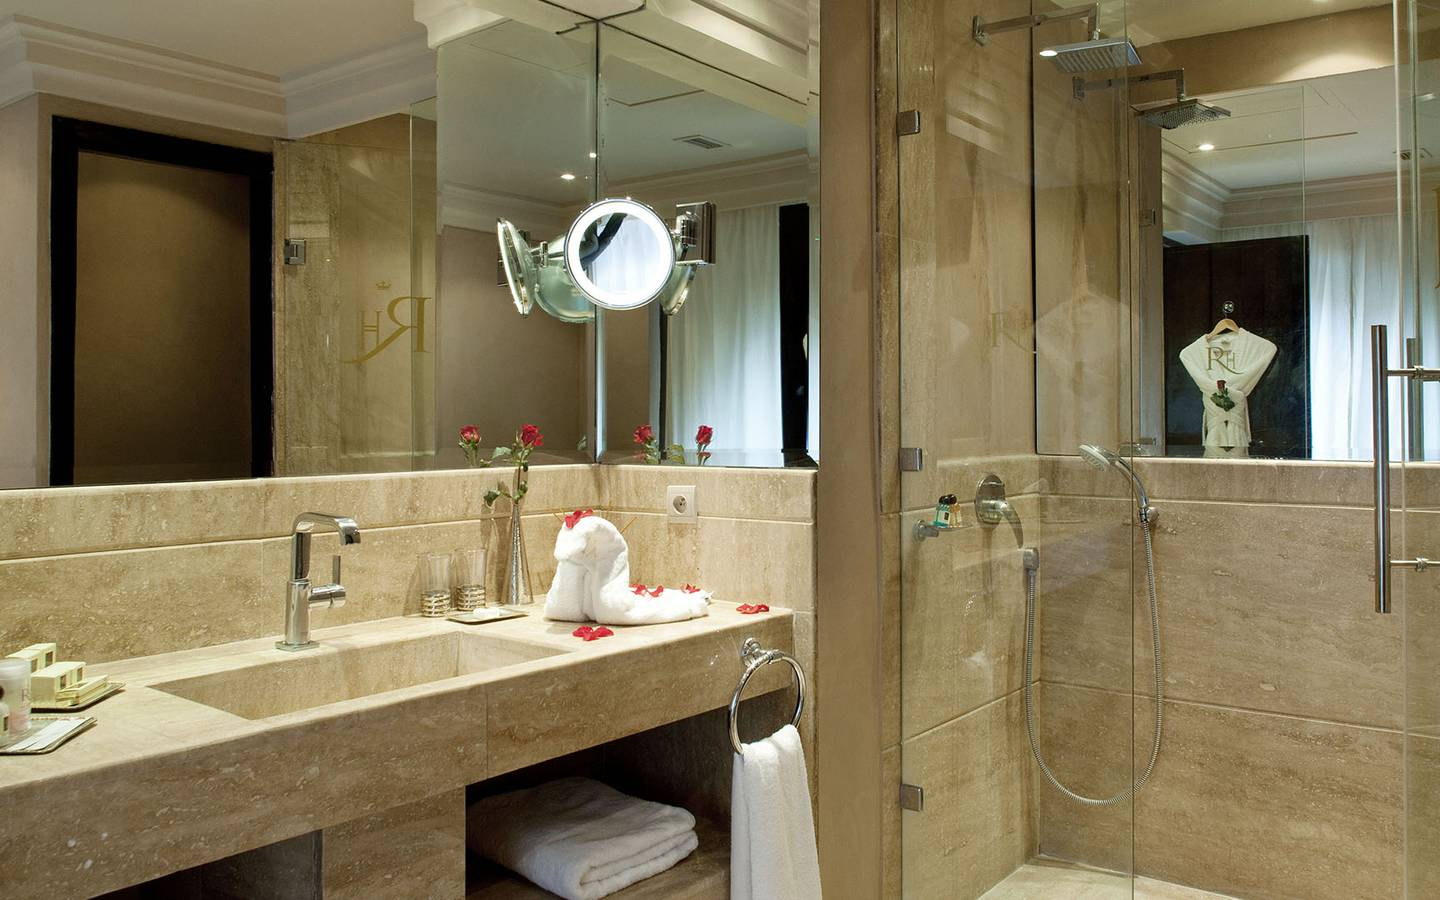 salle de bain luxe hotel au roch htel u spa paris chaque salle de bains fait office de hammam. Black Bedroom Furniture Sets. Home Design Ideas